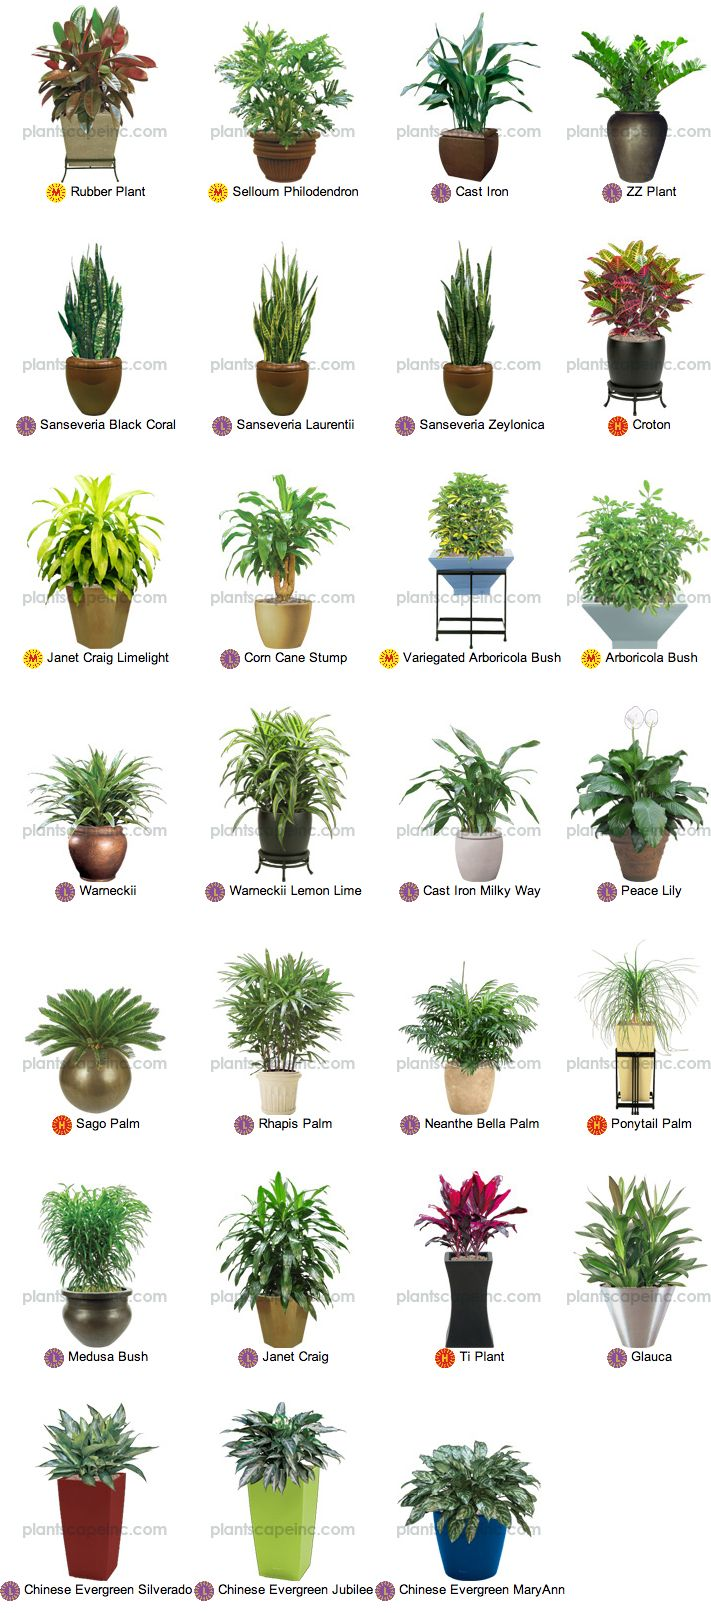 PLANTAS DE INTERIOR Small Tropical Plants for Interior Landscaping by Plantscape Inc.